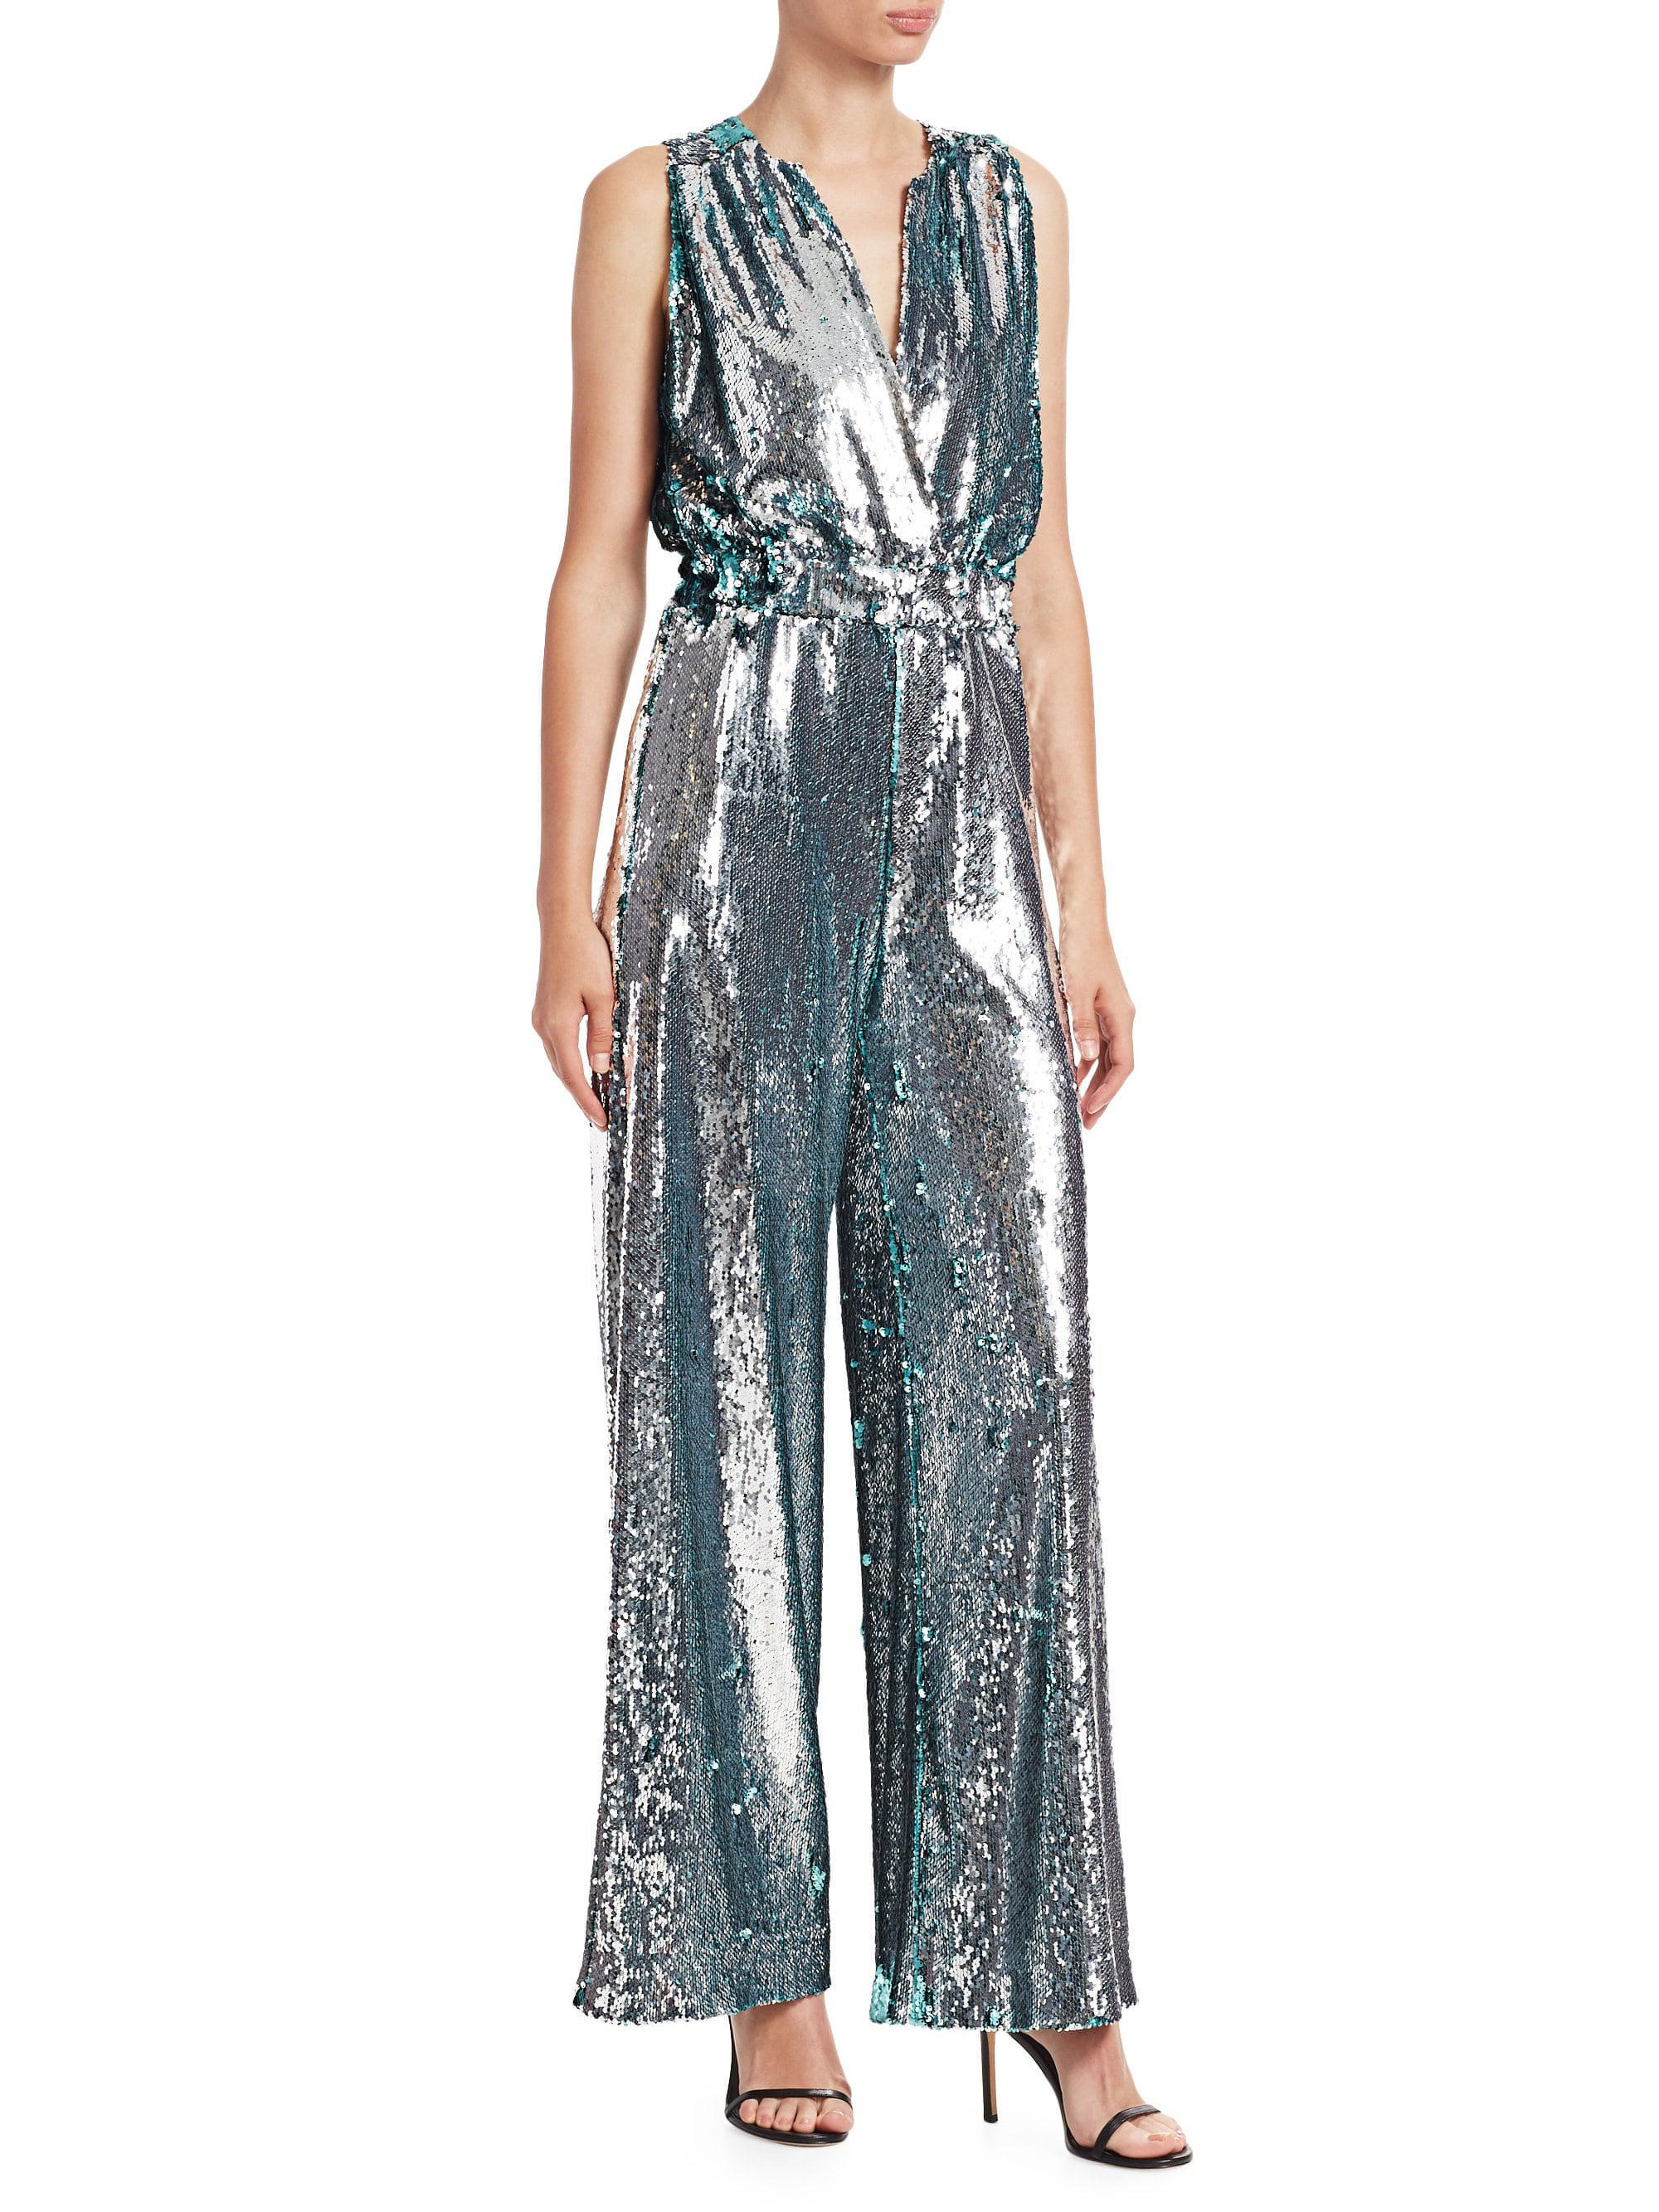 e9eeaac596f1 Carolina Ritzler. Women s Sleeveless Sequin Jumpsuit. £1